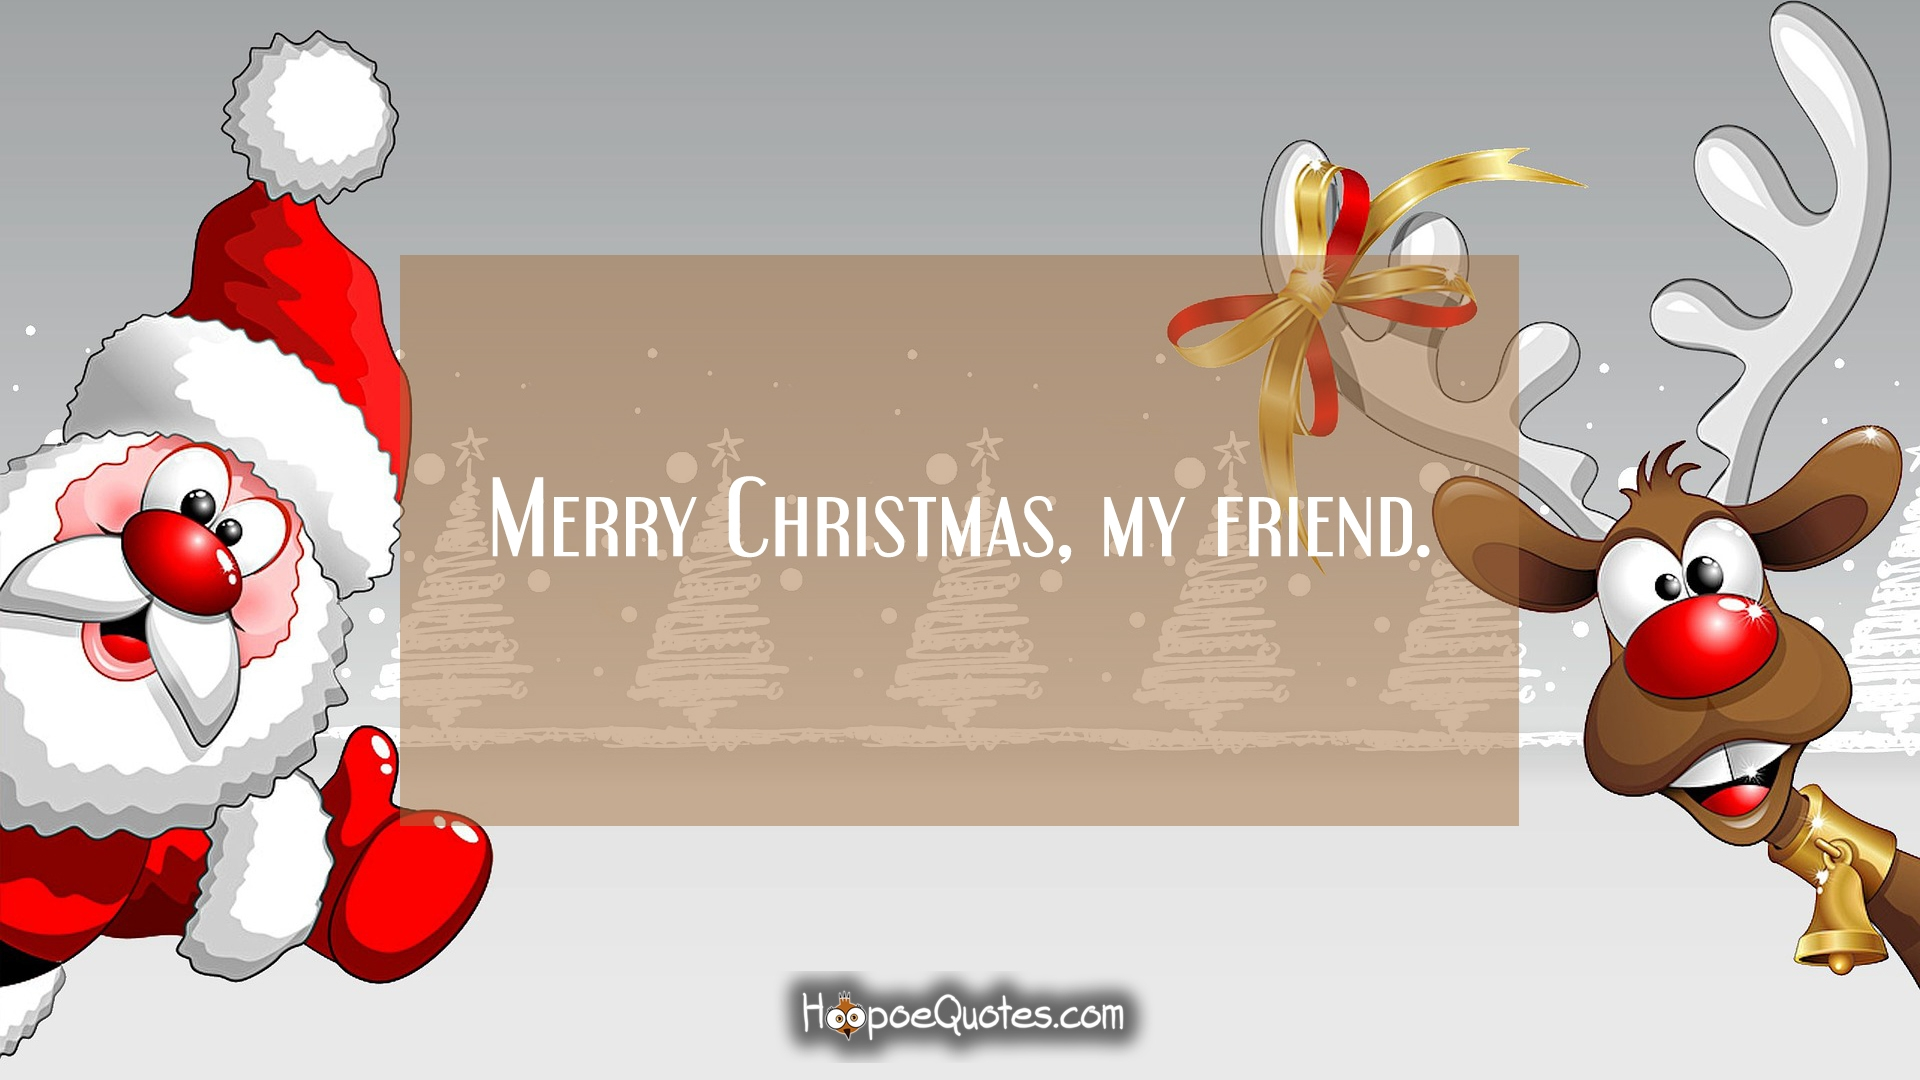 Merry christmas my friend hoopoequotes for Merry christmas wishes for friends